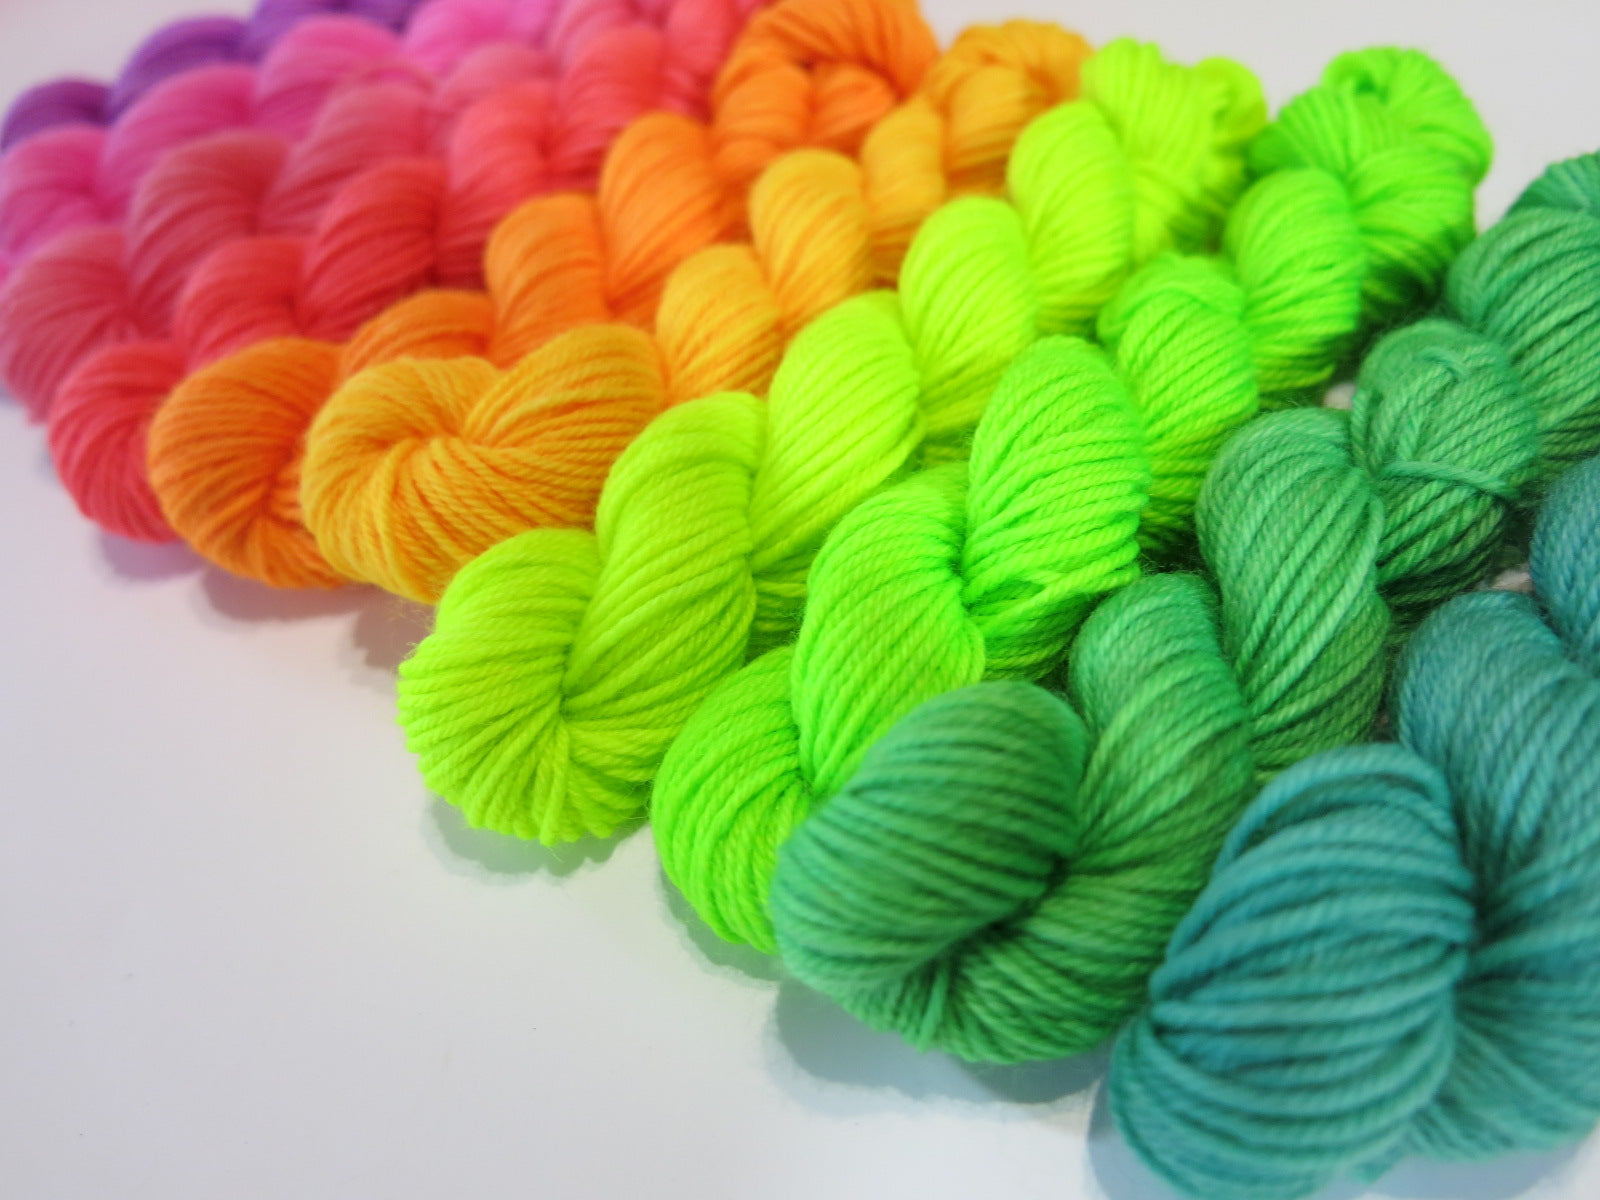 uv reactive rainbow merino yarn mini skeins